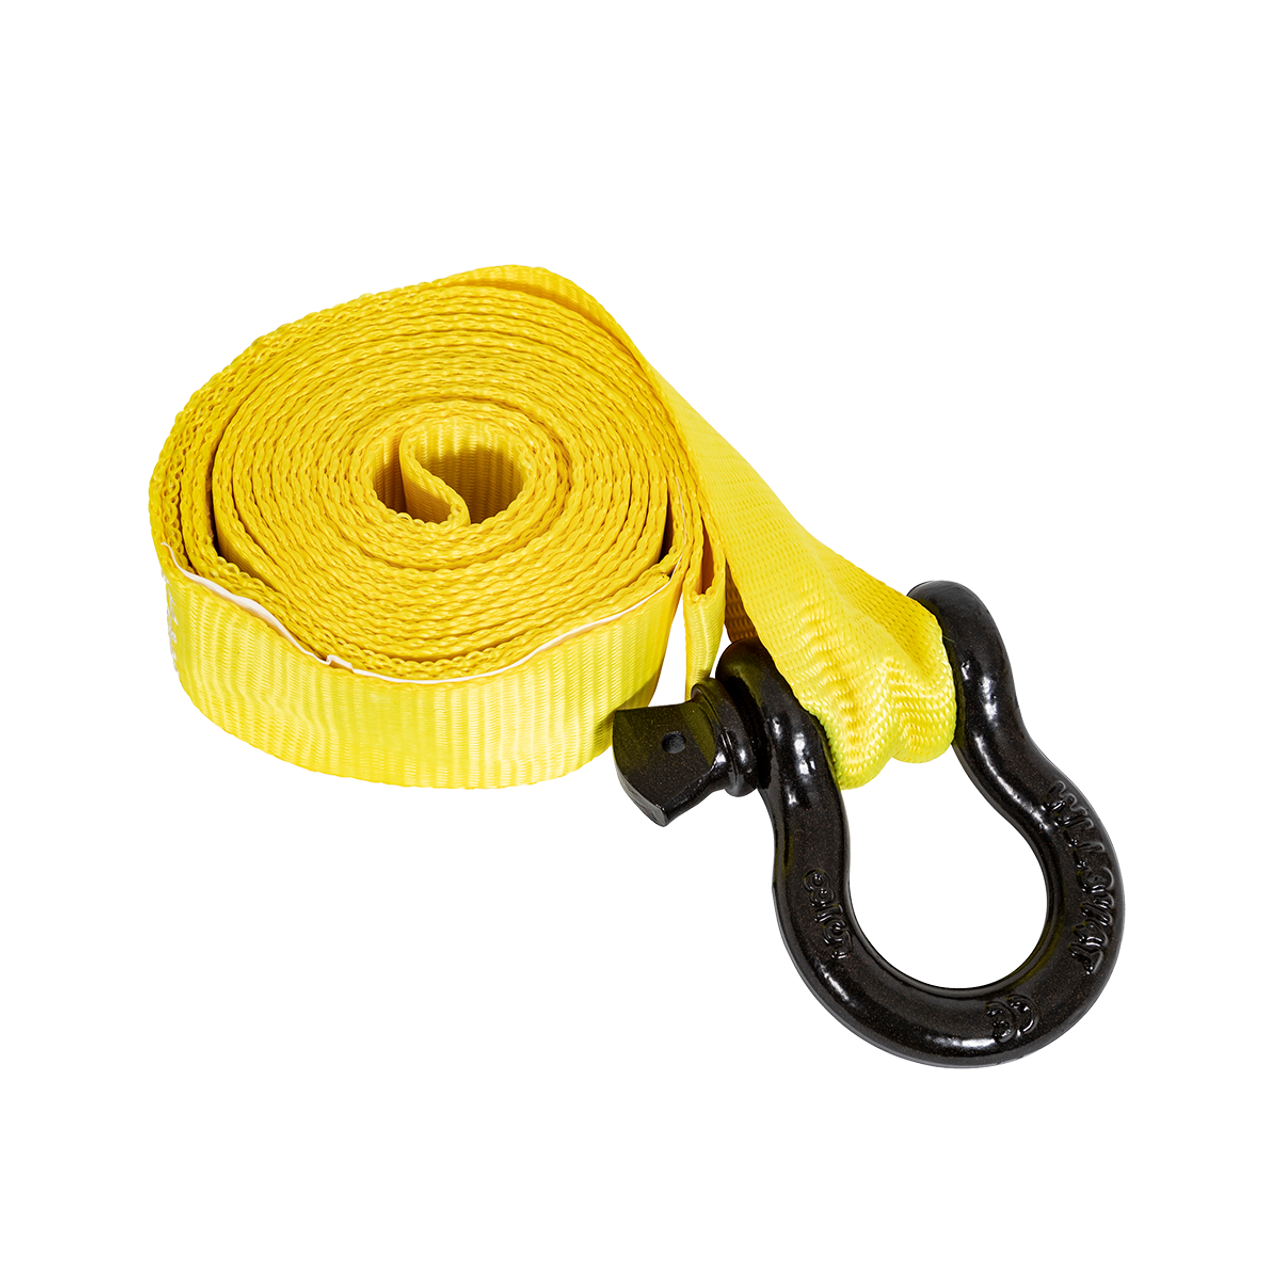 5483505 --- Tow Strap with Loop/Shackle Ends - 12'